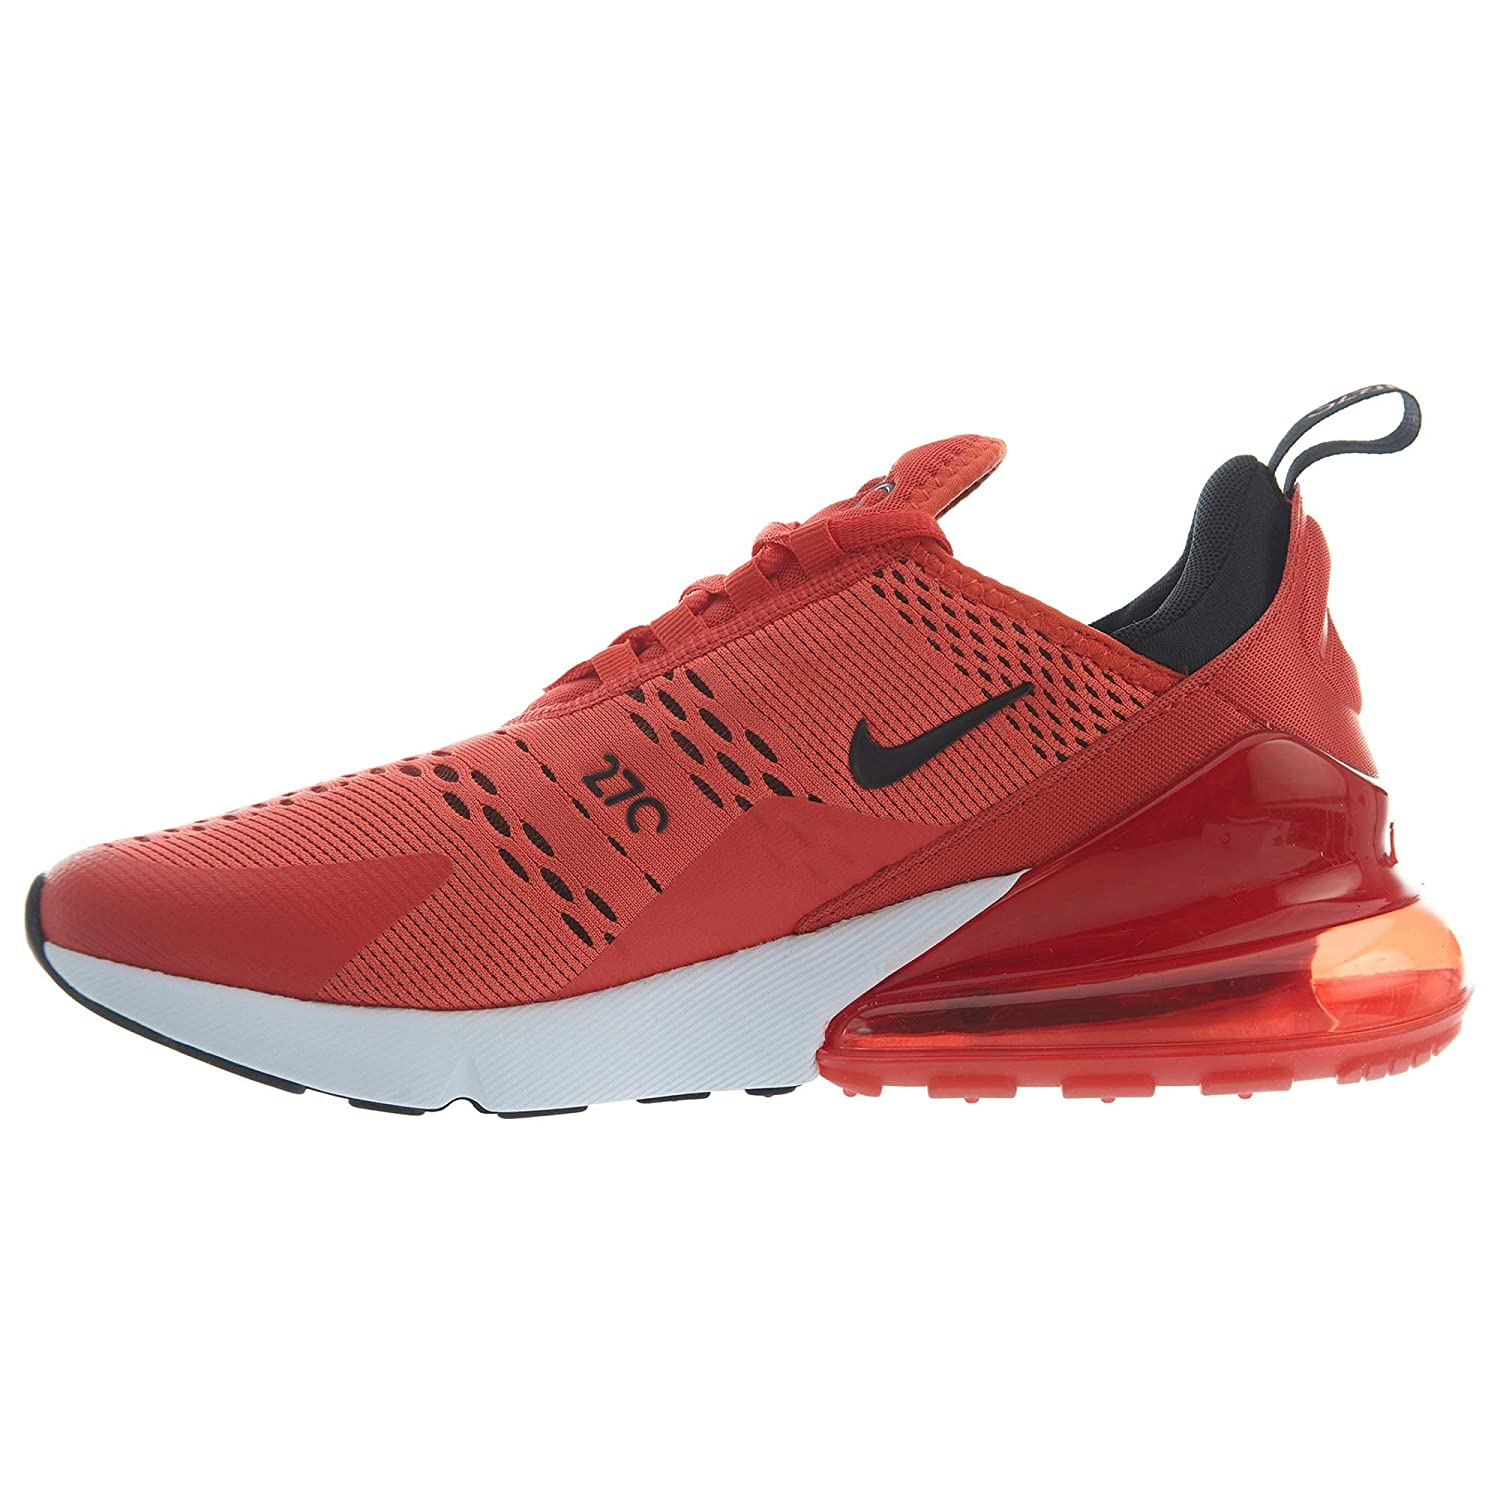 Available Nike Air Max 270 Habanero RedBlack White